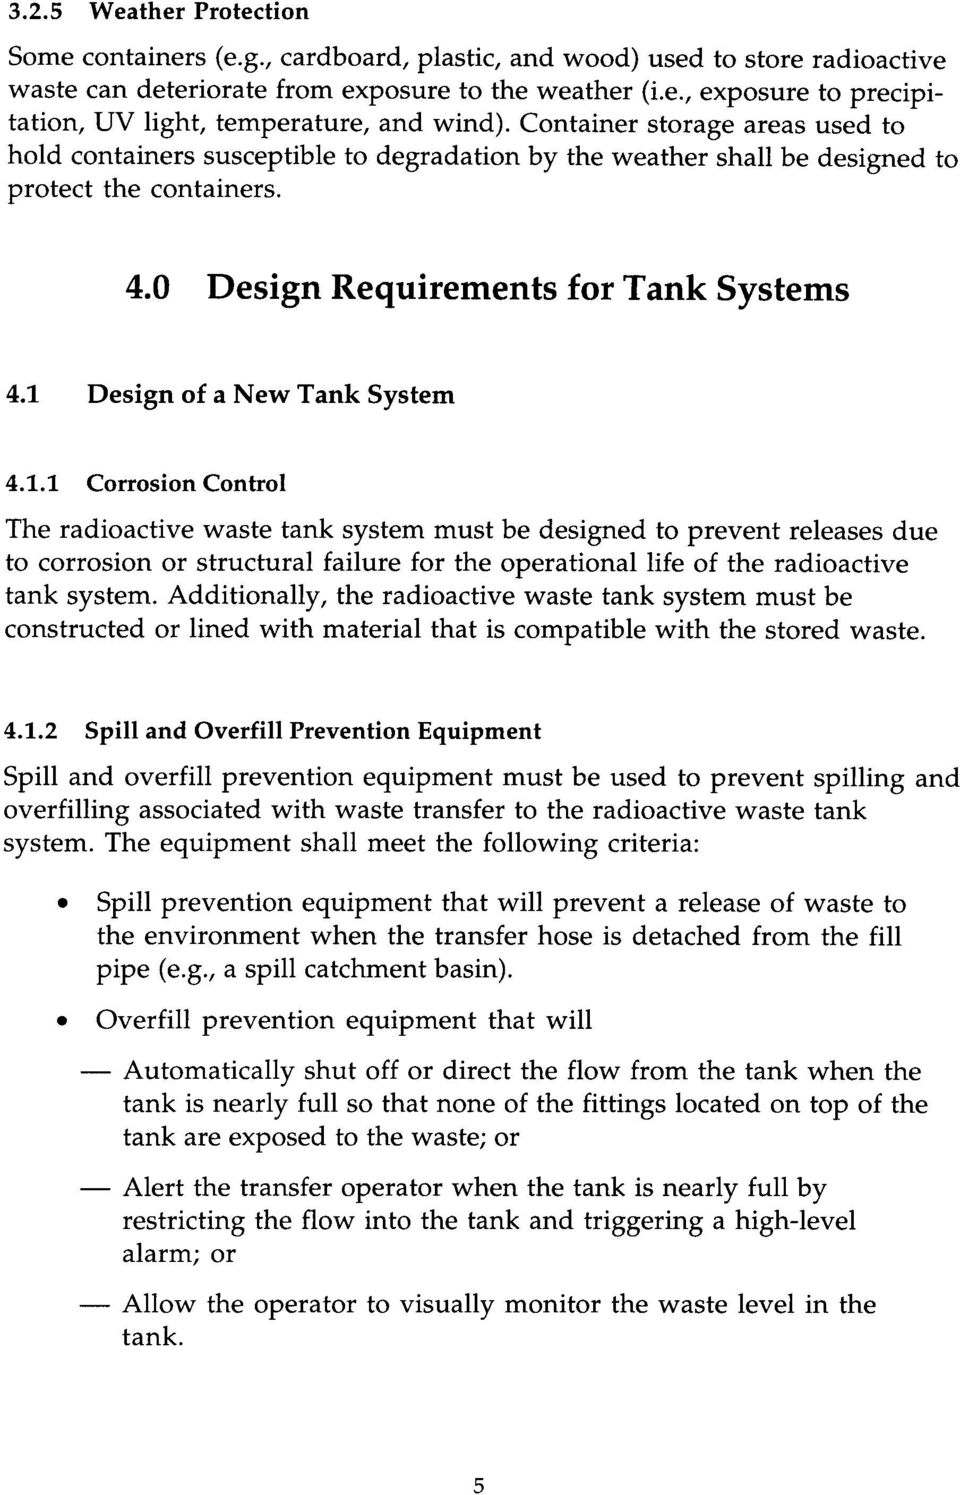 1 Design of a New Tank System 4.1.1 Corrosion Control The radioactive waste tank system must be designed to prevent releases due to corrosion or structural failure for the operational life of the radioactive tank system.